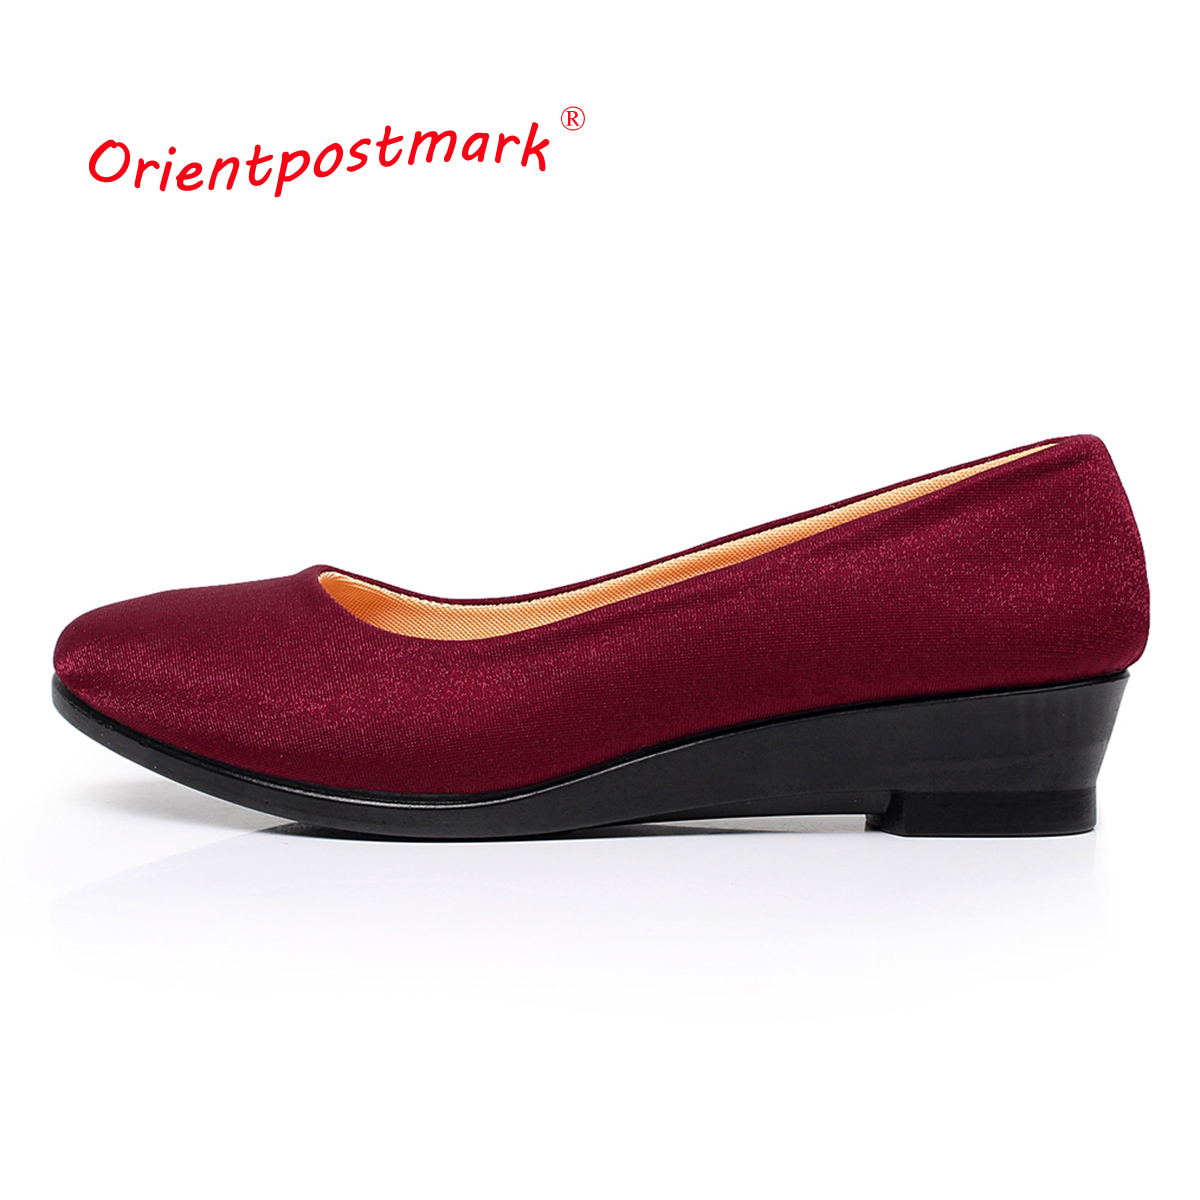 Women Wedges Shoes Women Shoes for Work Cloth Wedges Sweet Loafers Slip On Women's Pregnant Wedges Shoes Oversize Boat Shoes buckle slip on wedges